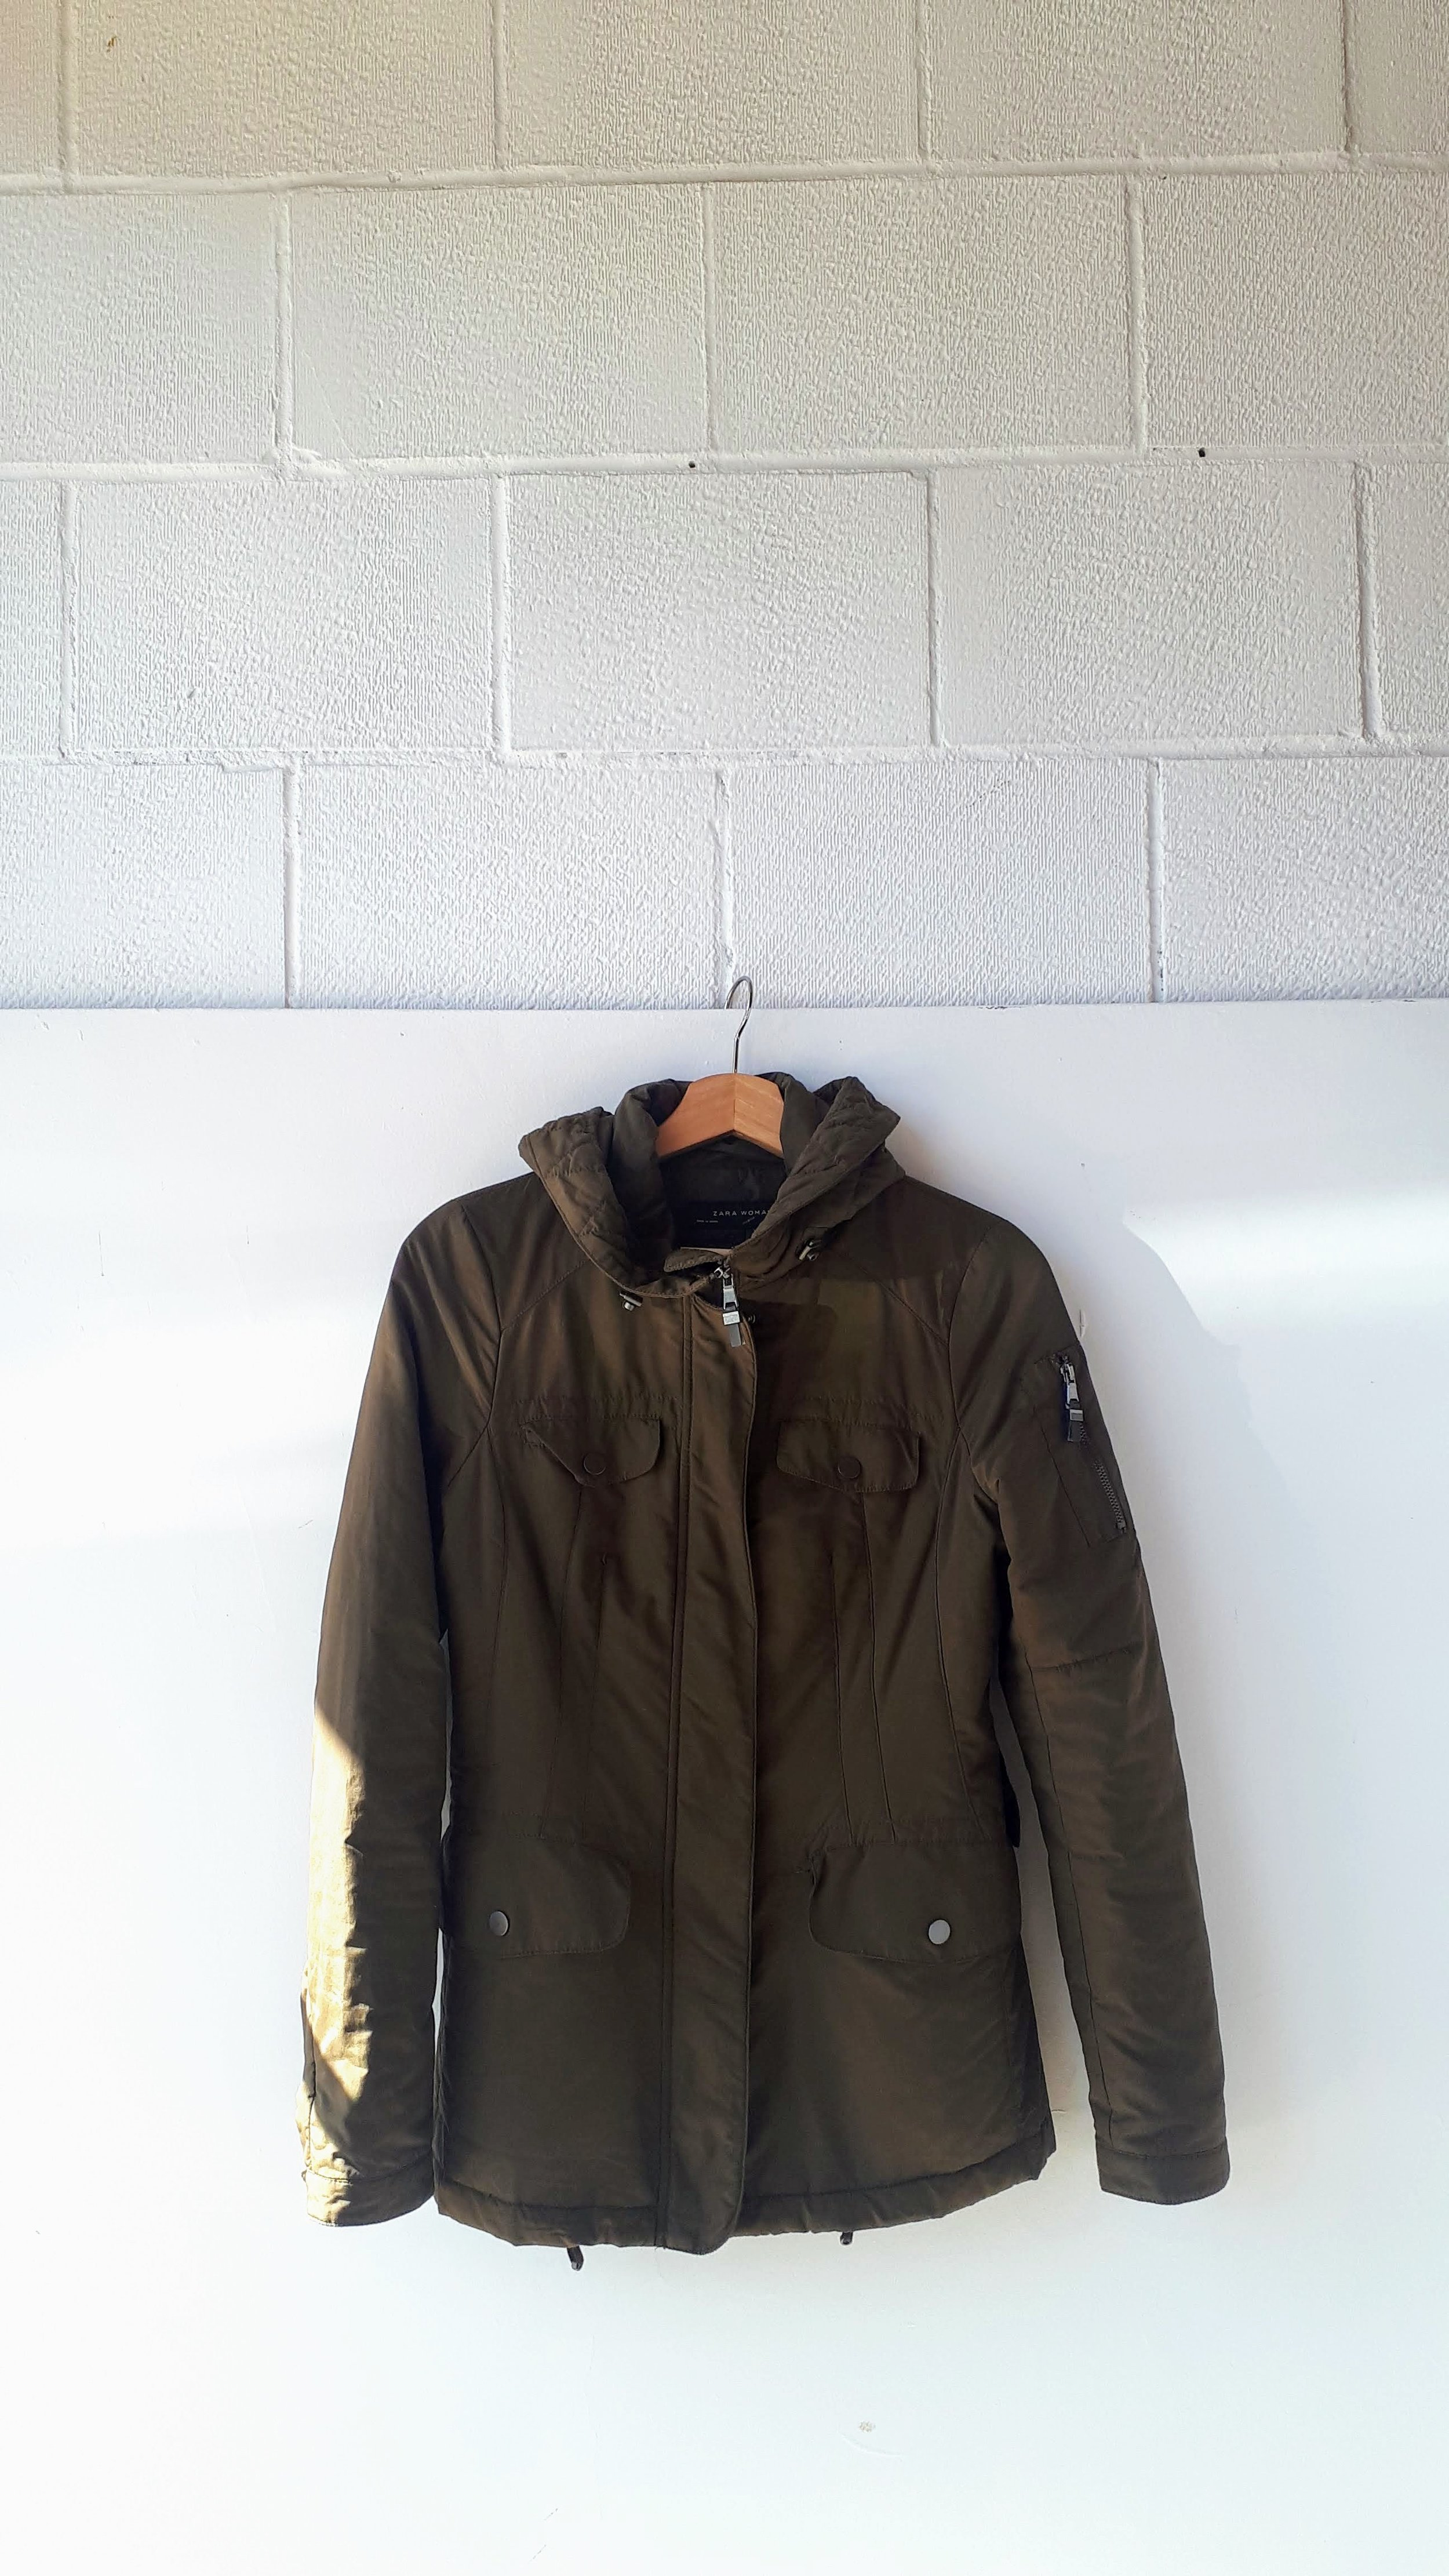 Jacket; Size S, $36 (on sale for $18!)